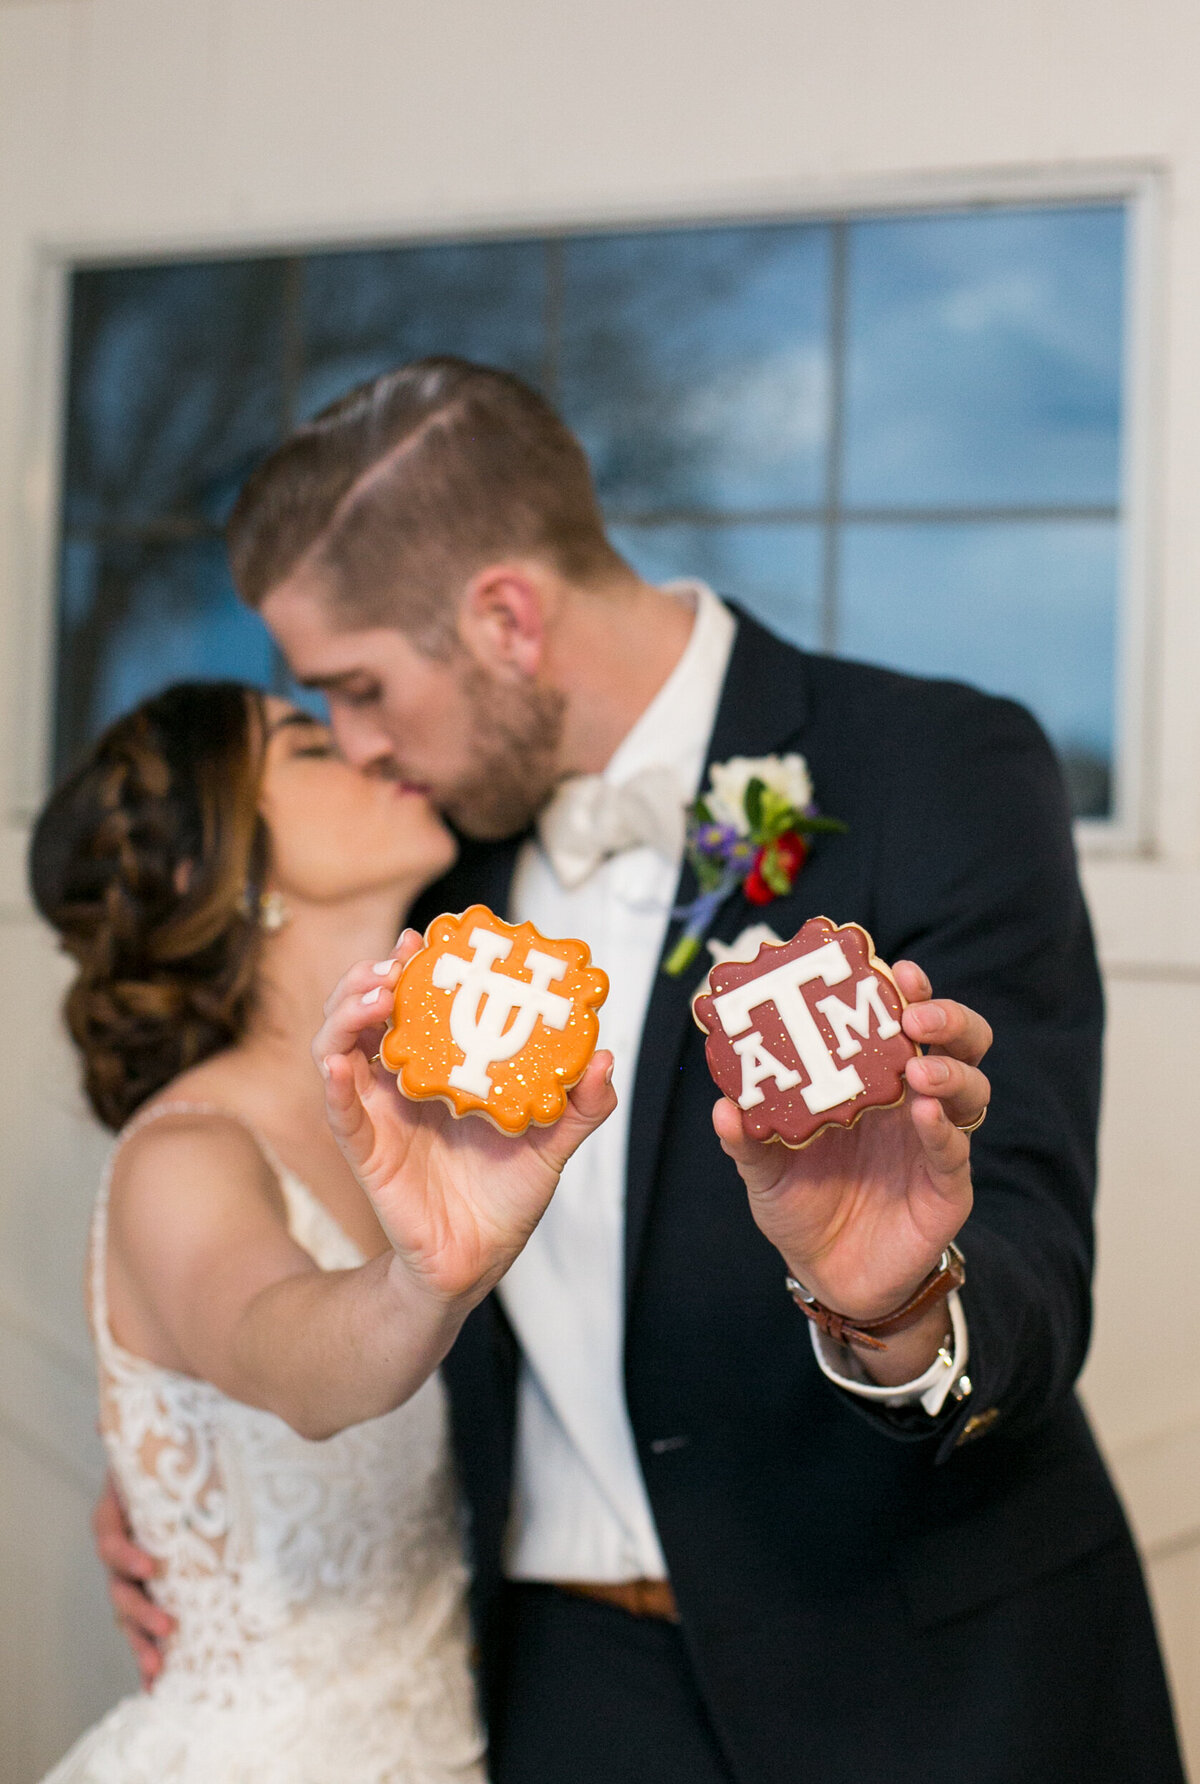 A bride and groom kissing on wedding day. Holding cookies from A&M and UT